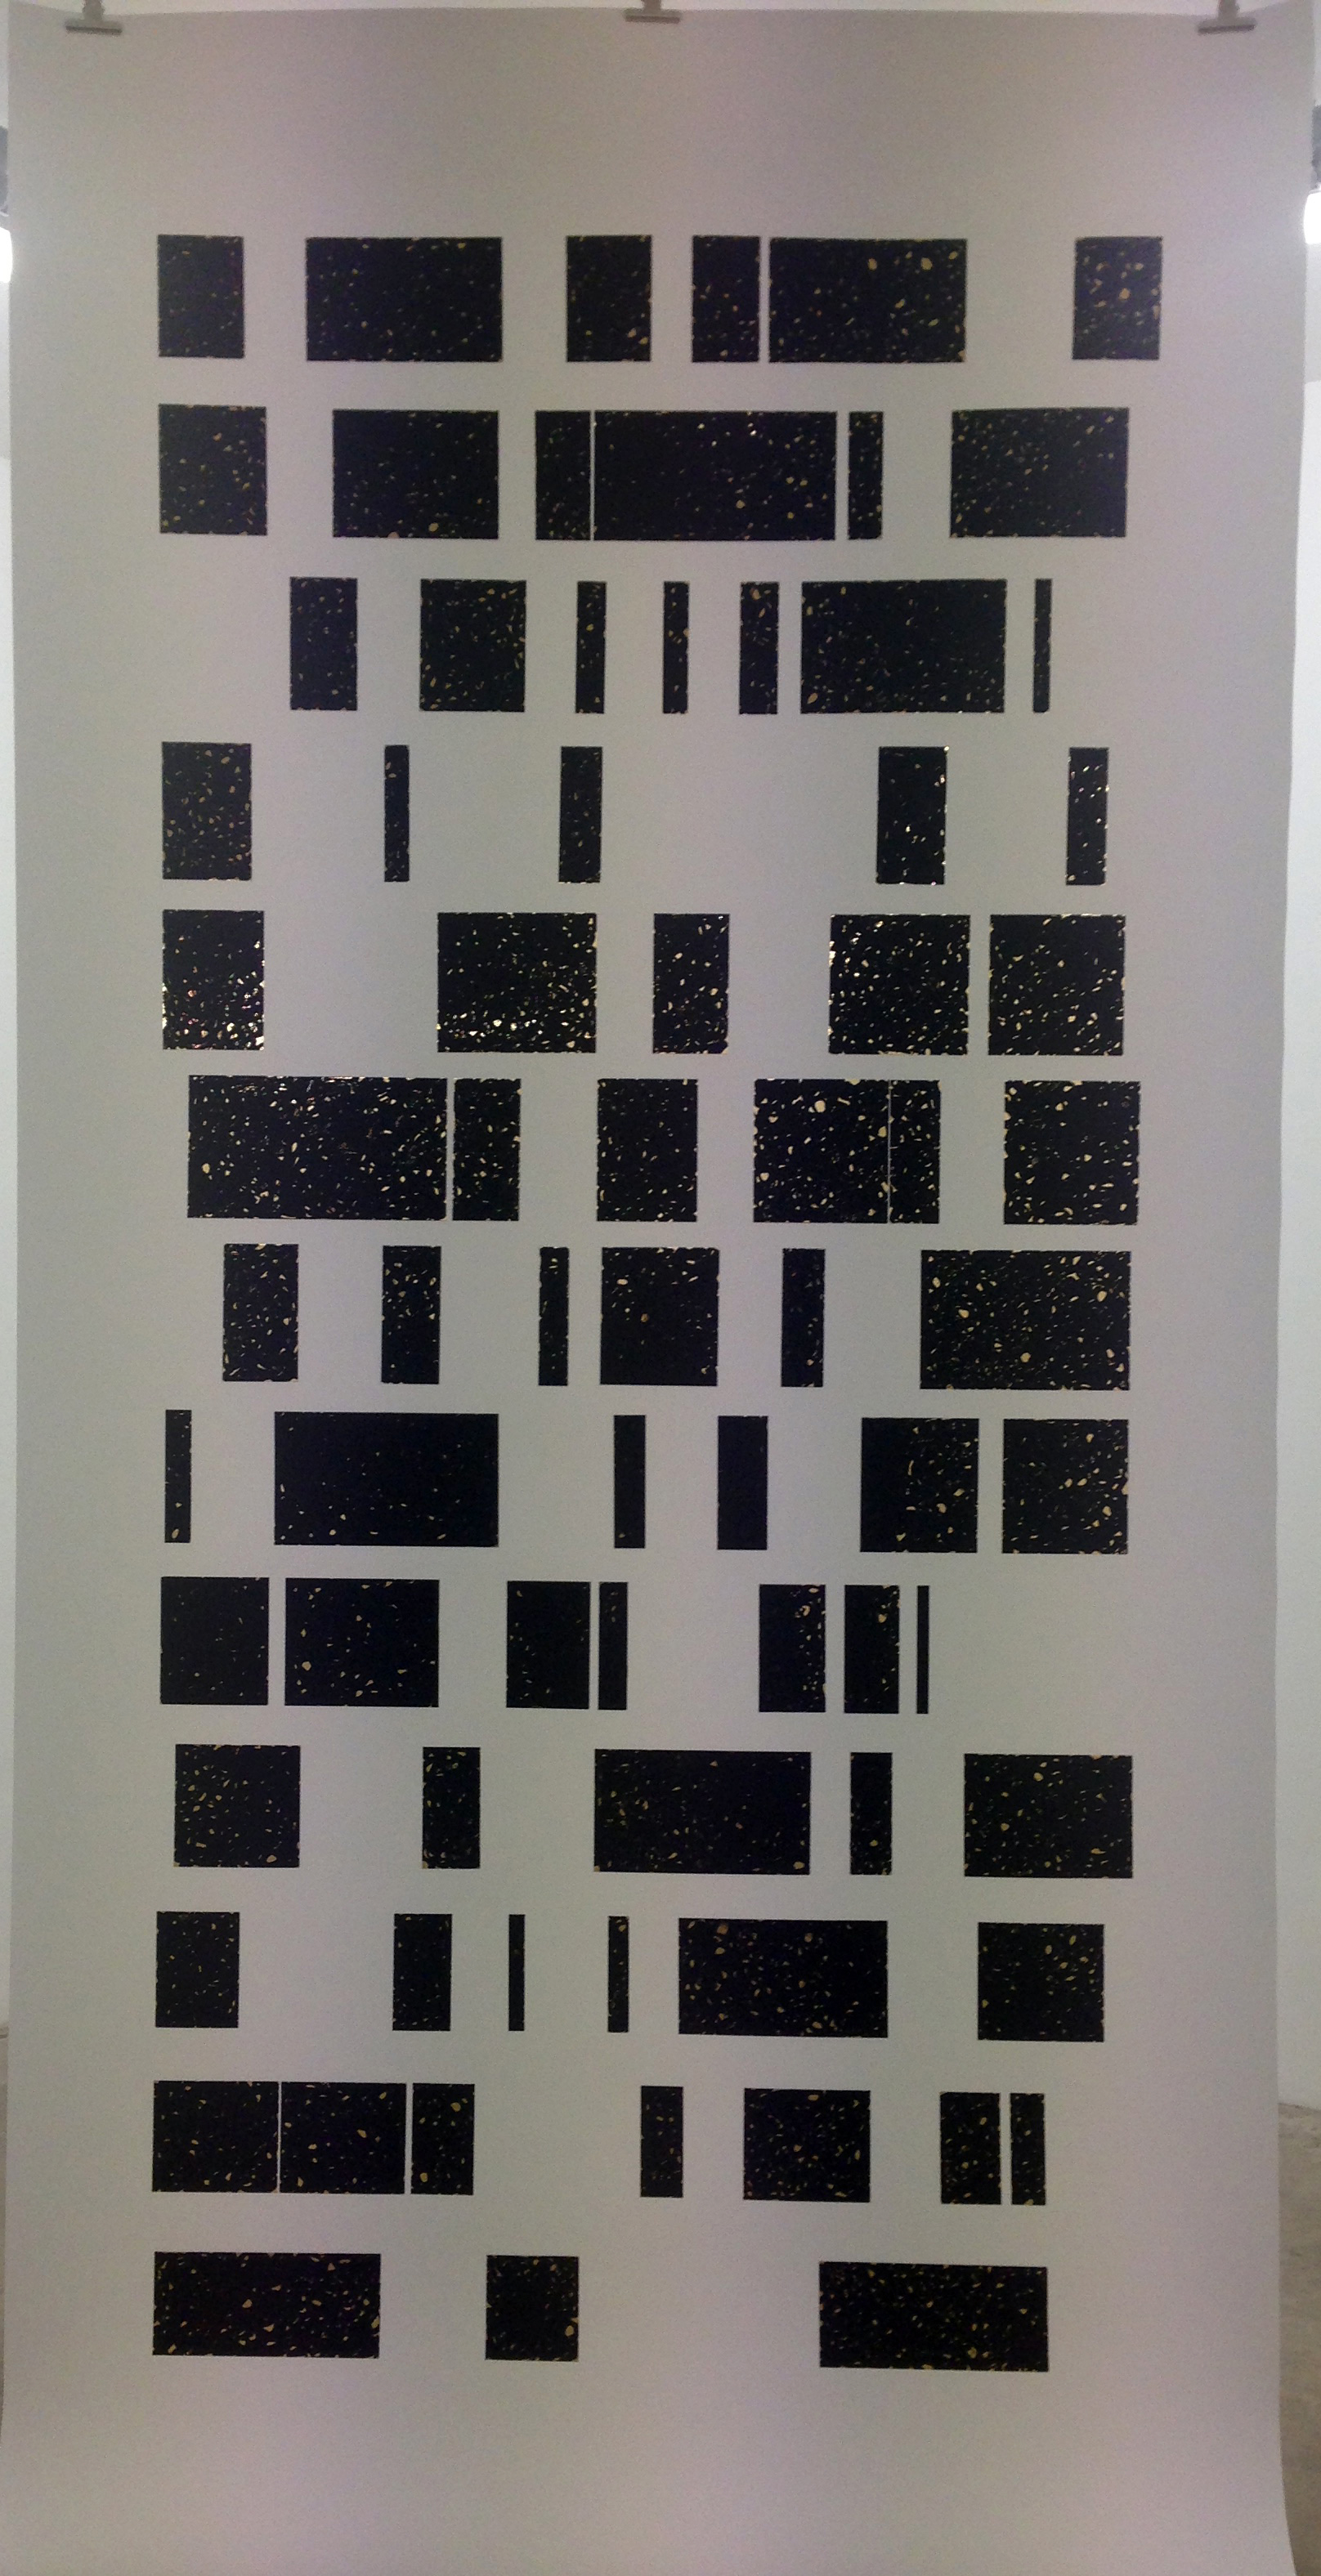 300 X 150 CM Permanent Marker and Adhesive Foil on Paper